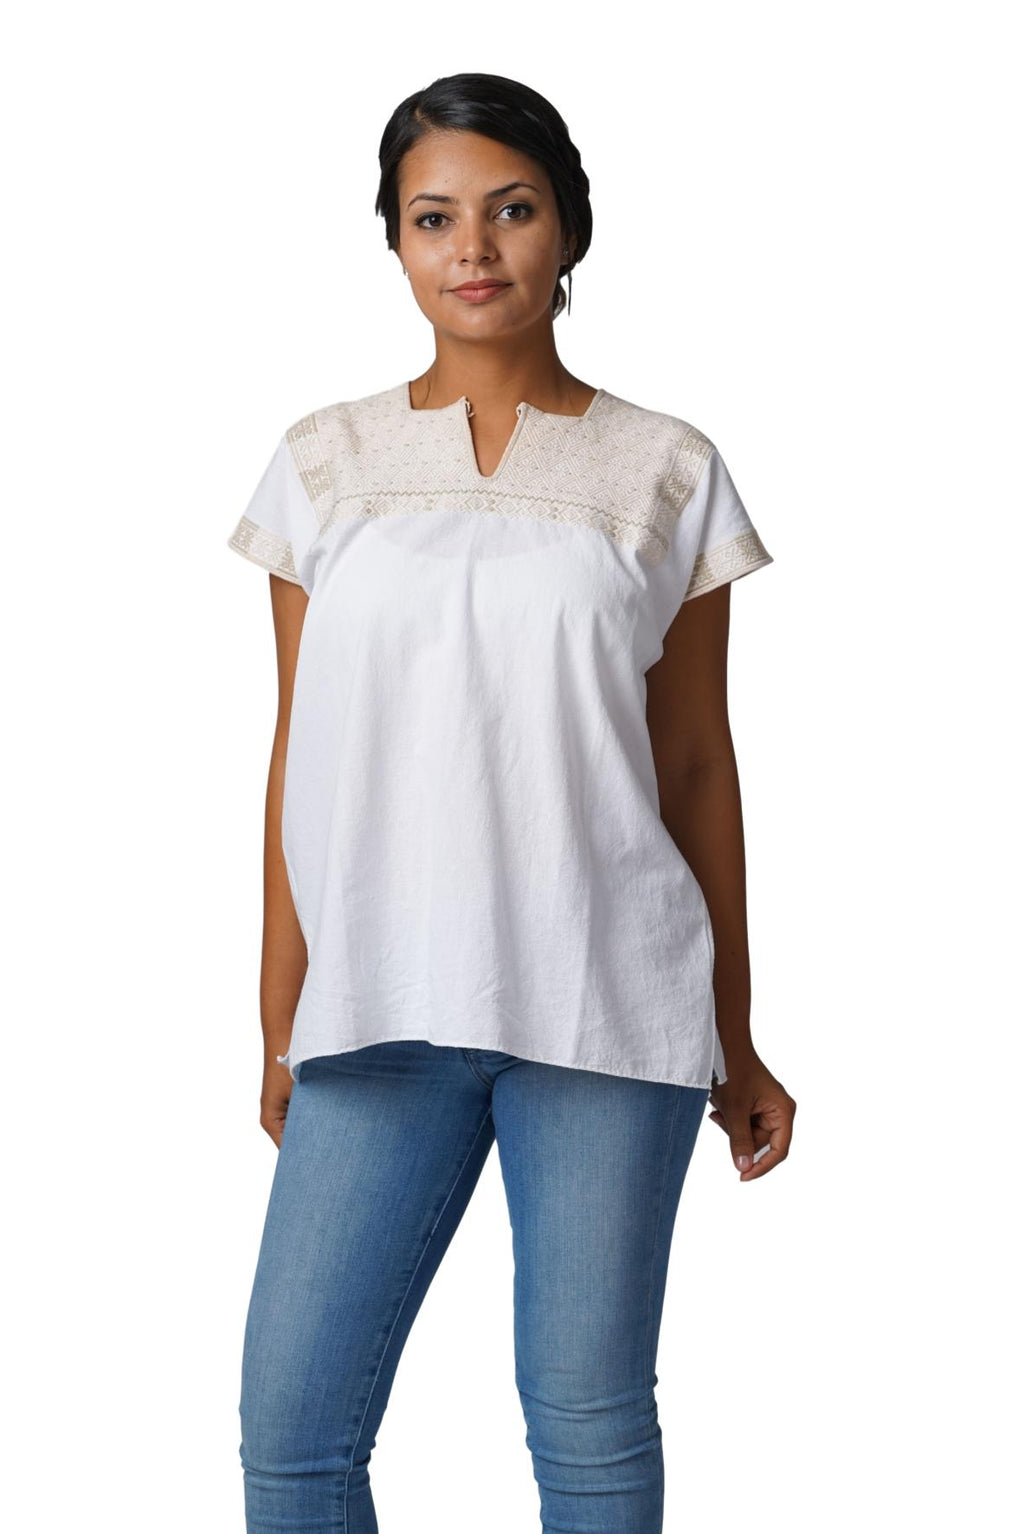 Soledad Mexican Blouse - Ivory